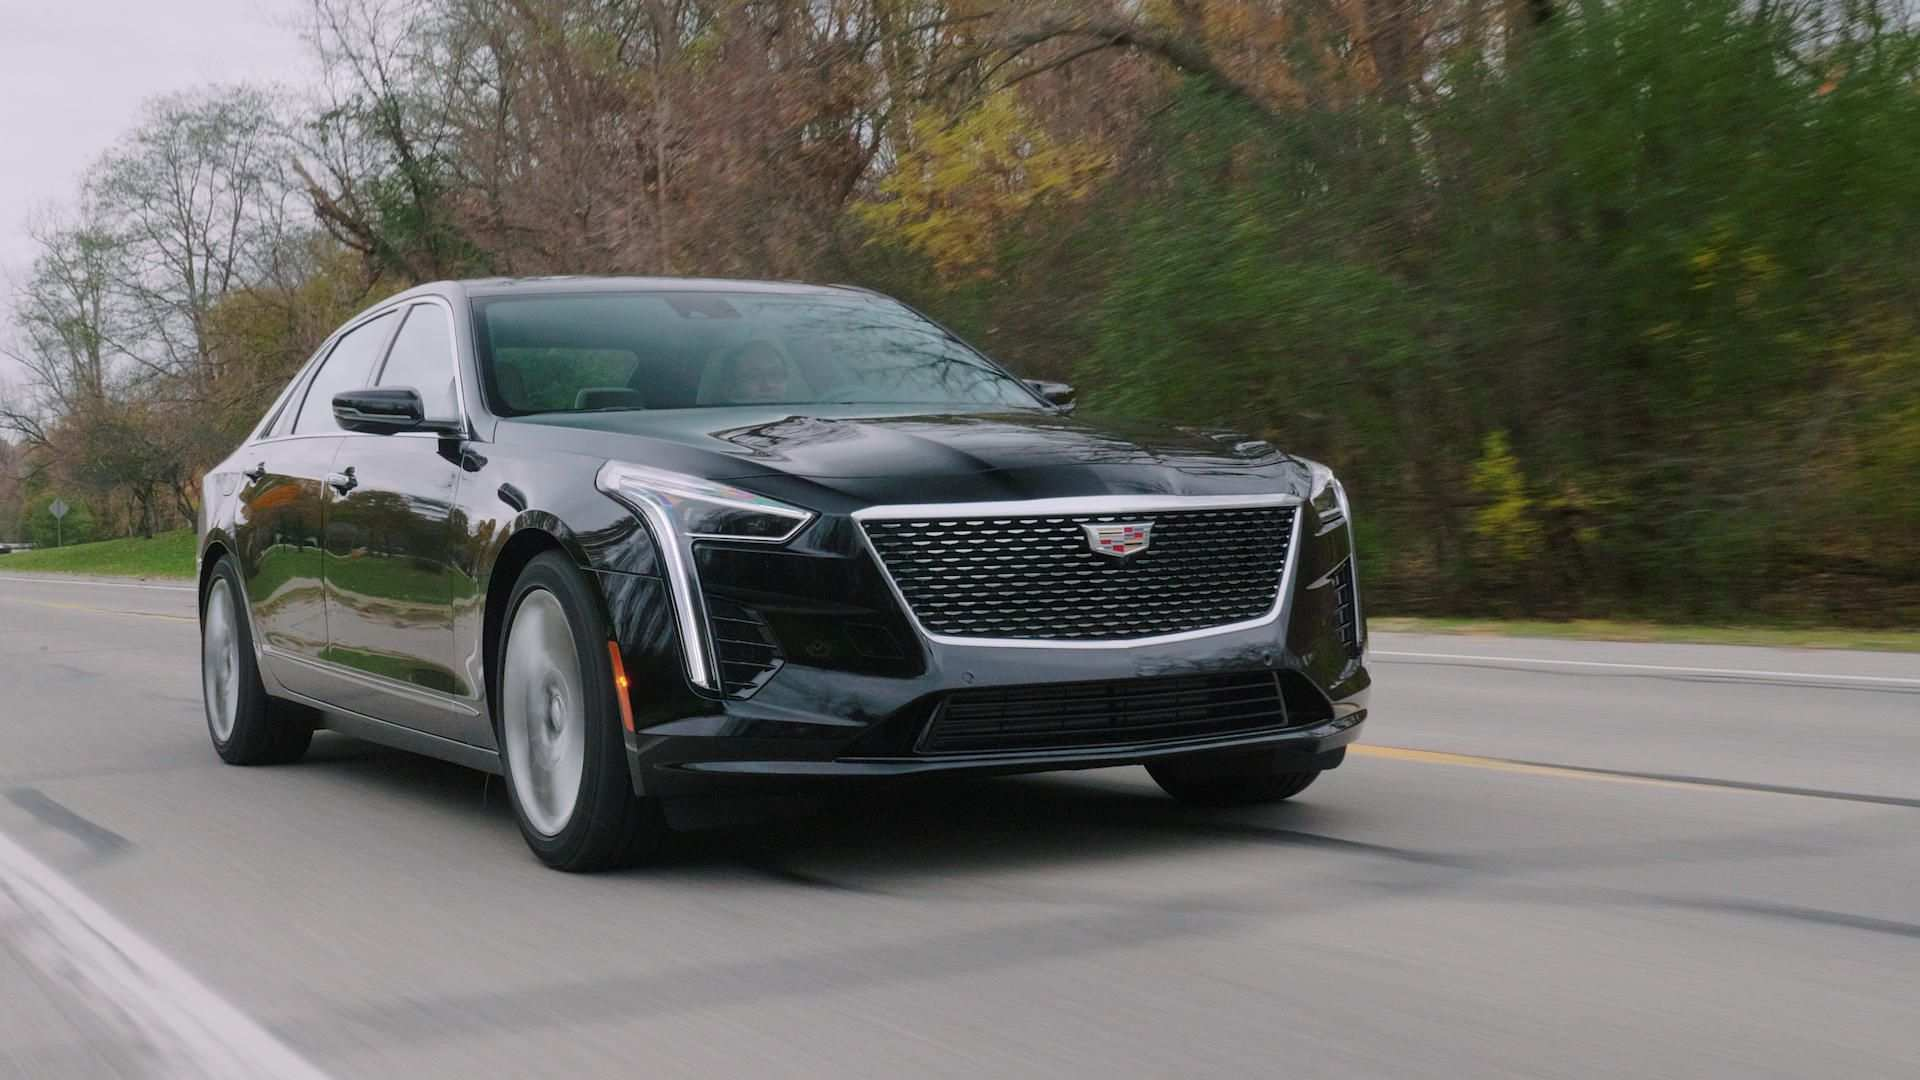 58 Great Cadillac Flagship 2019 Release Date Rumors with Cadillac Flagship 2019 Release Date